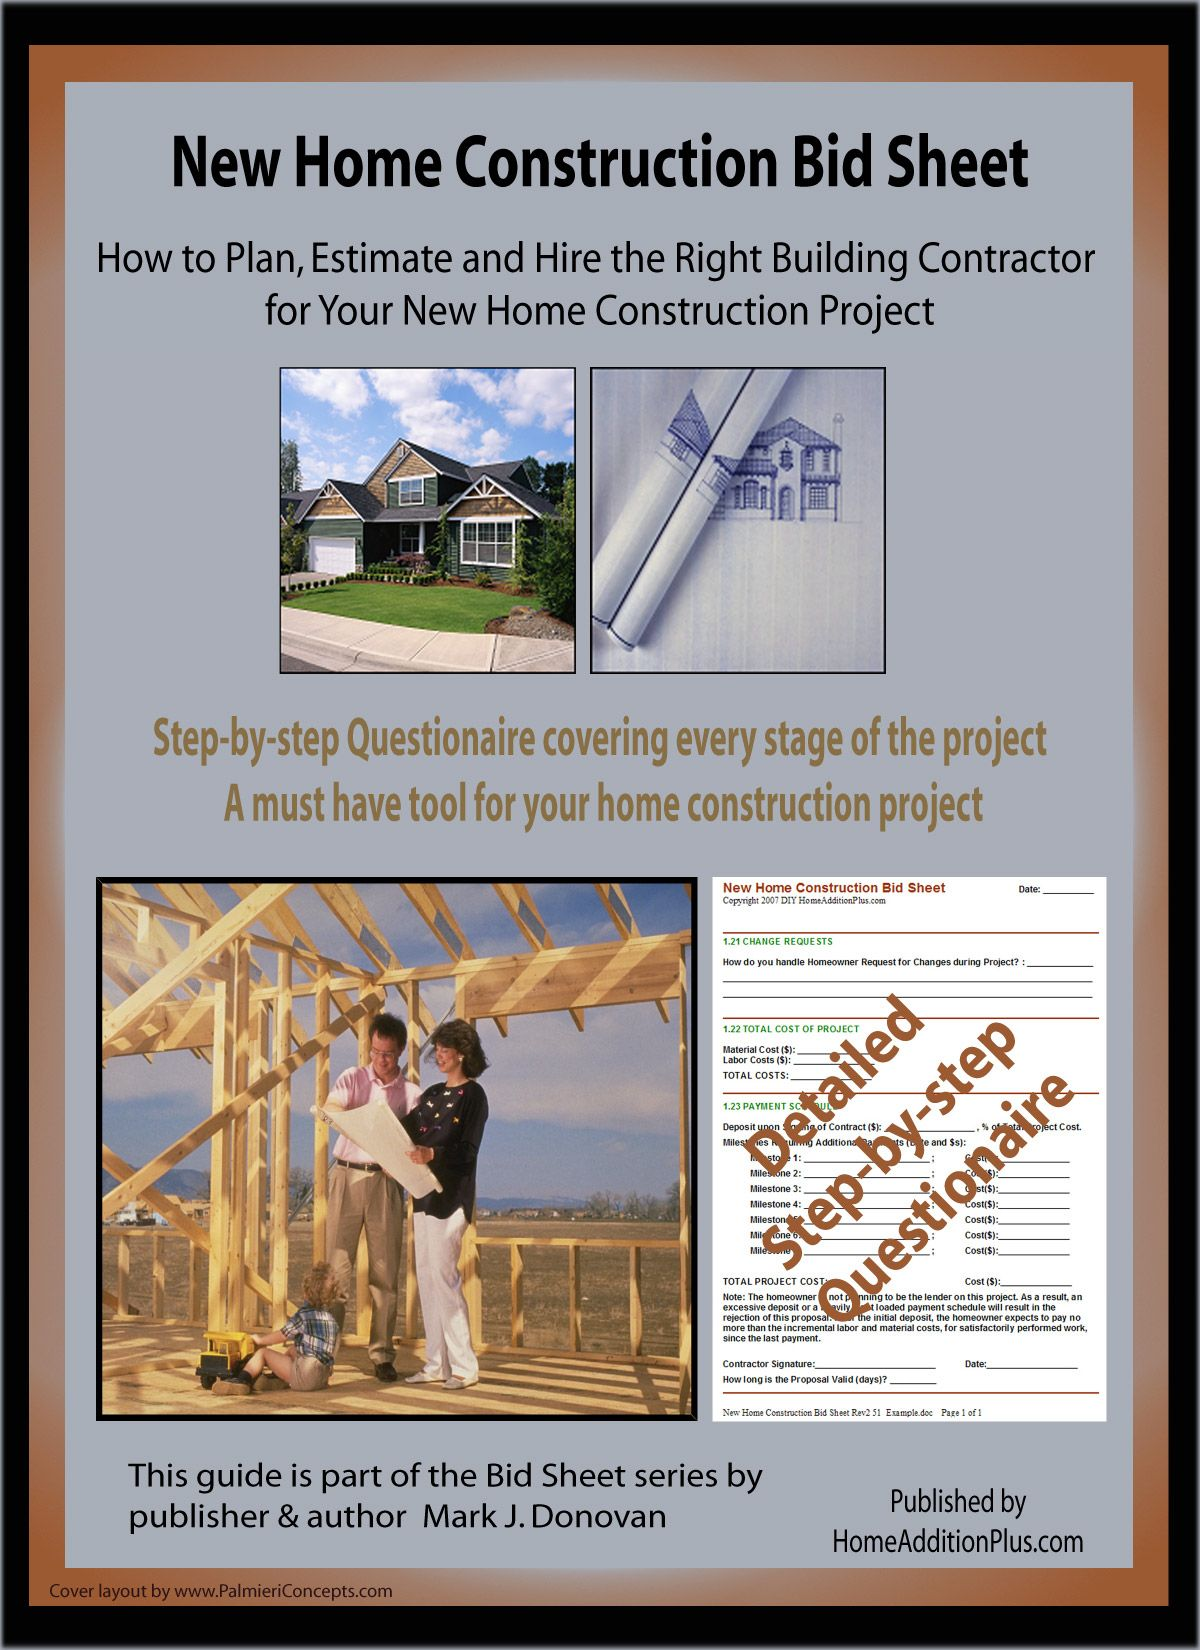 Here Is A New Home Construction Bid Sheet For Helping SoonToBe